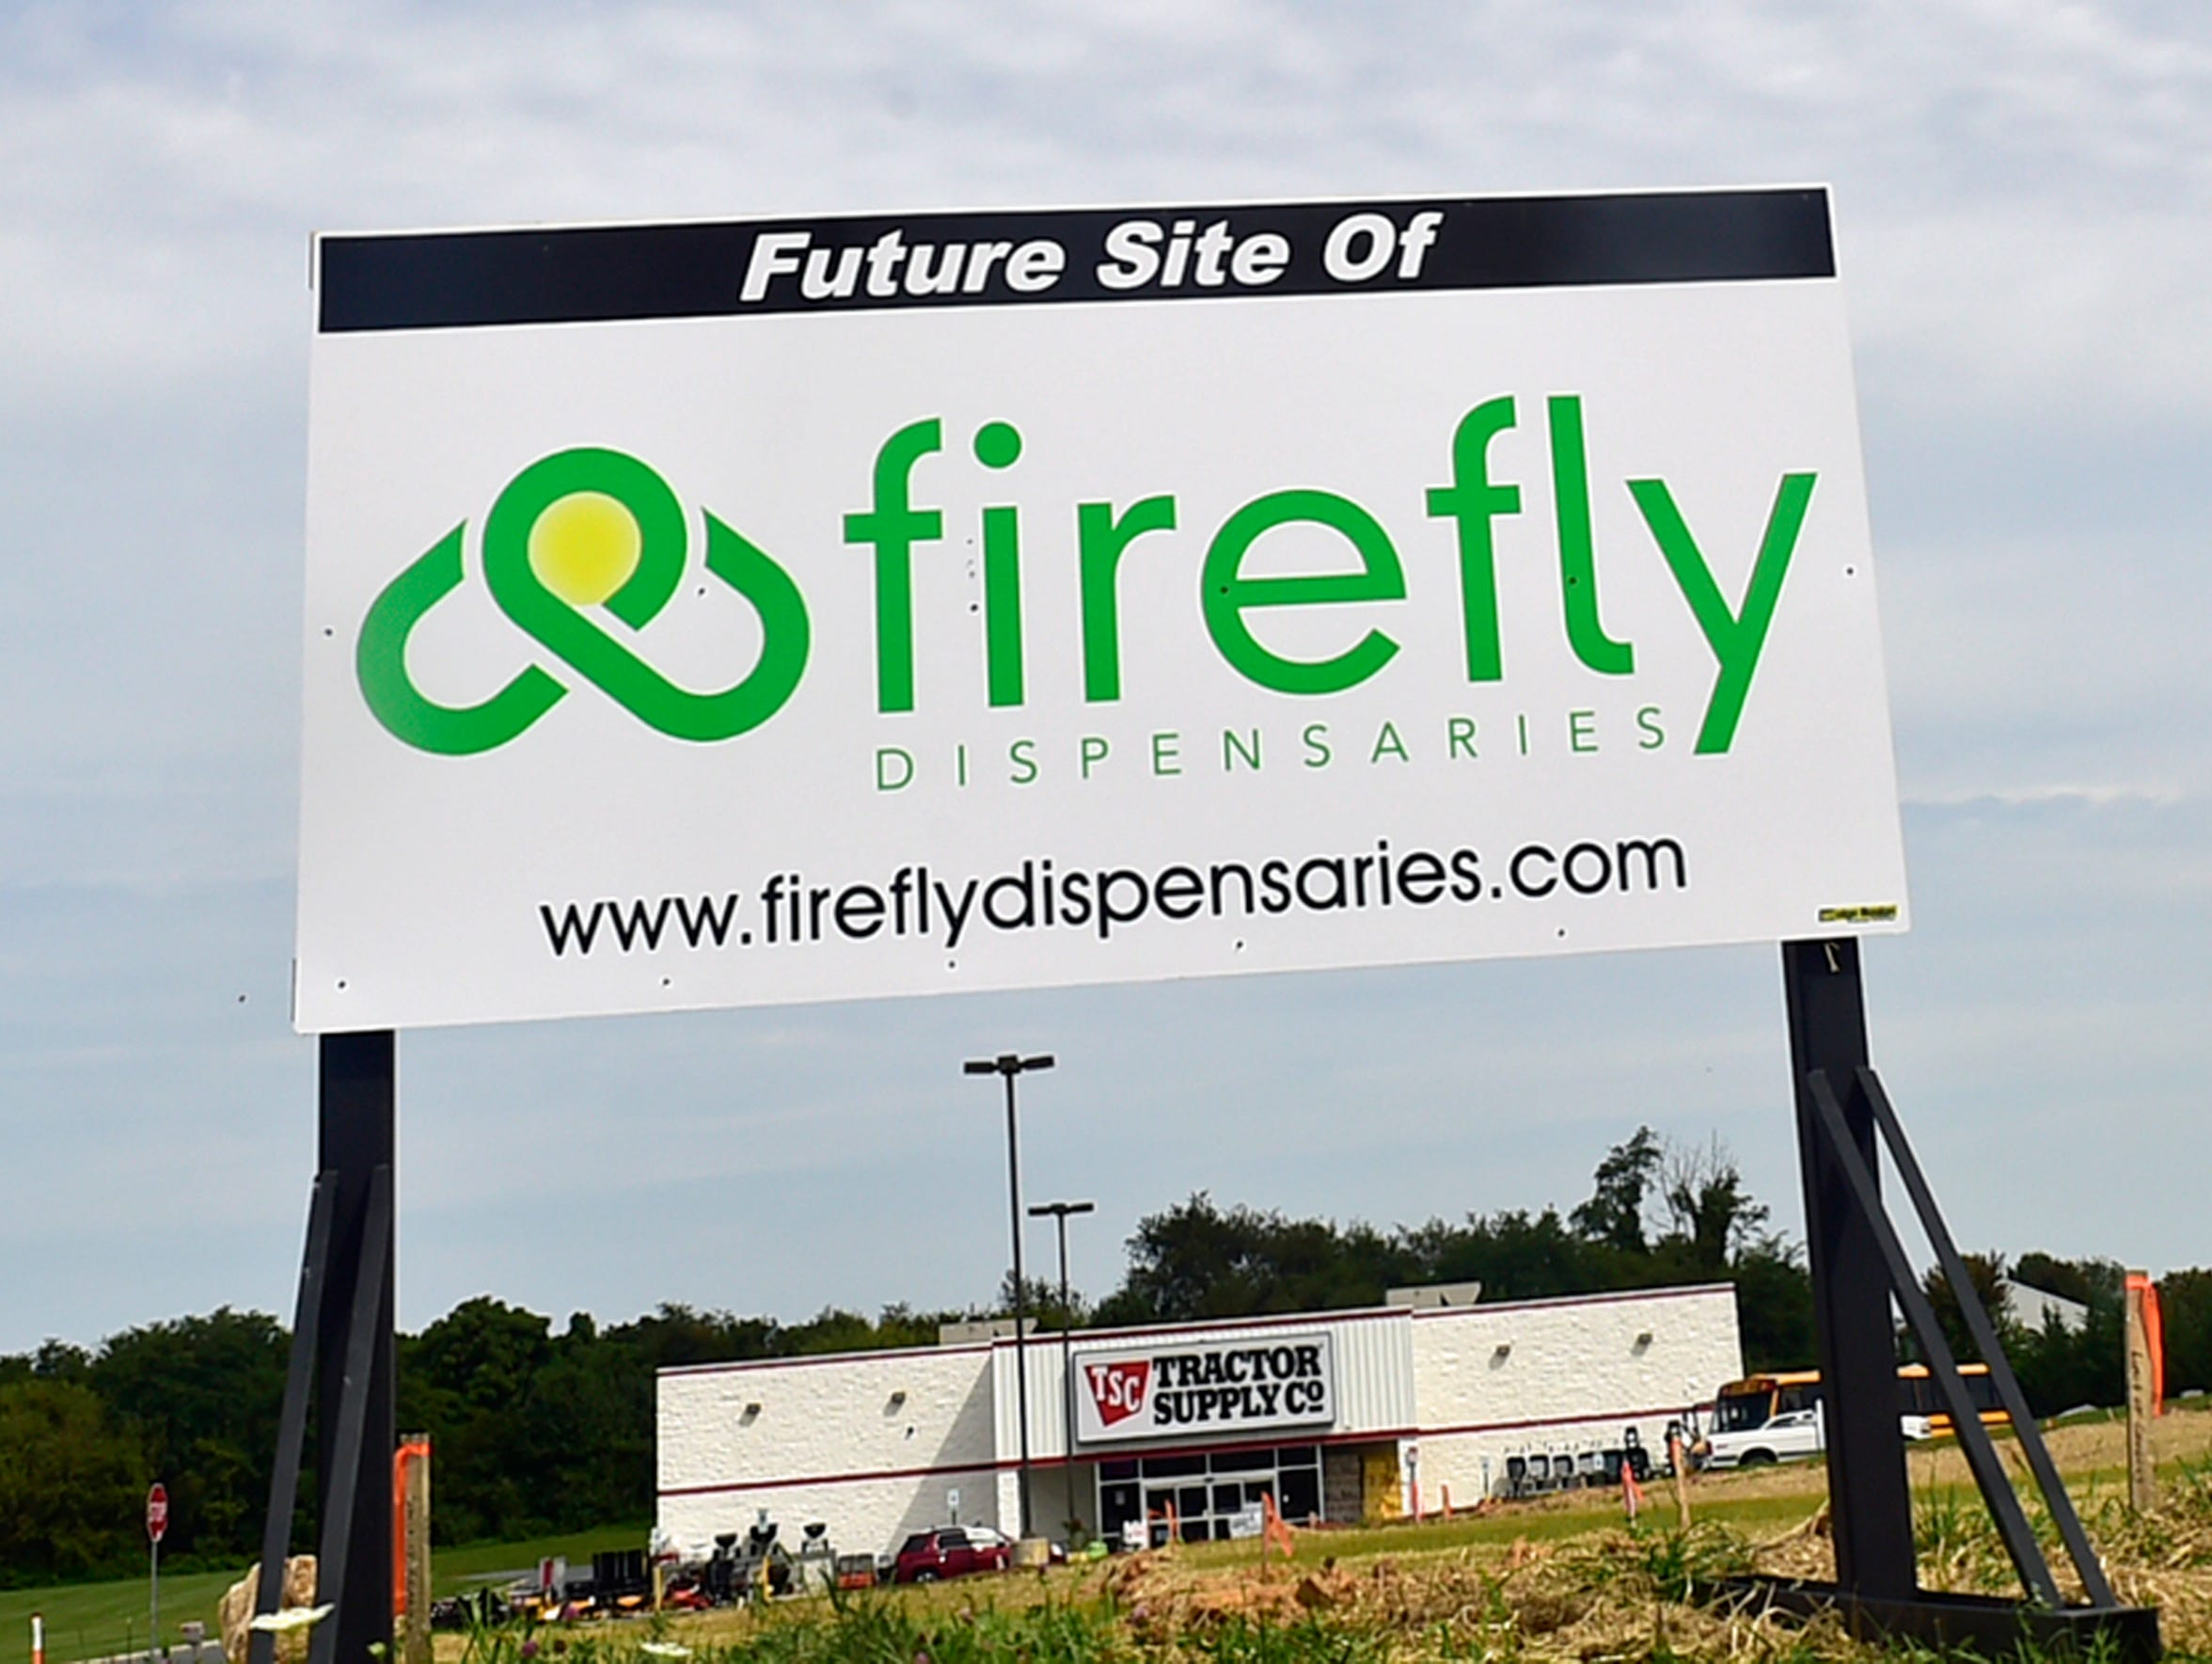 Firefly Dispensaries, photographed Tuesday, September